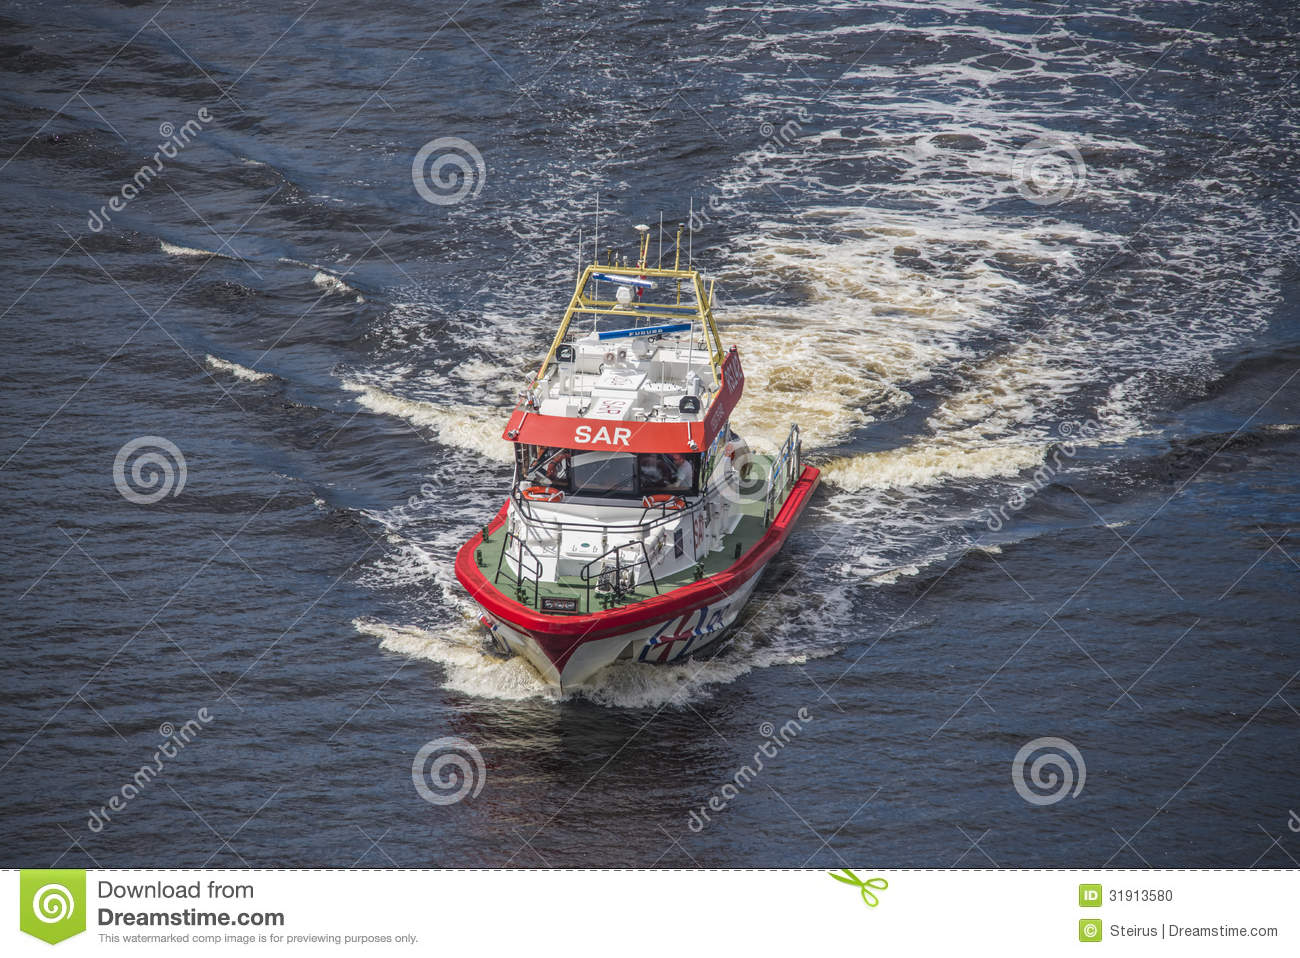 Rescue Boat Rs 142 Horn Flyer Escorts Ms Sja C2 B8kurs With Nrk Through Ringdalsfjord Heading For The Port Of Halden Photo Is Shot From Svinesund Bridge